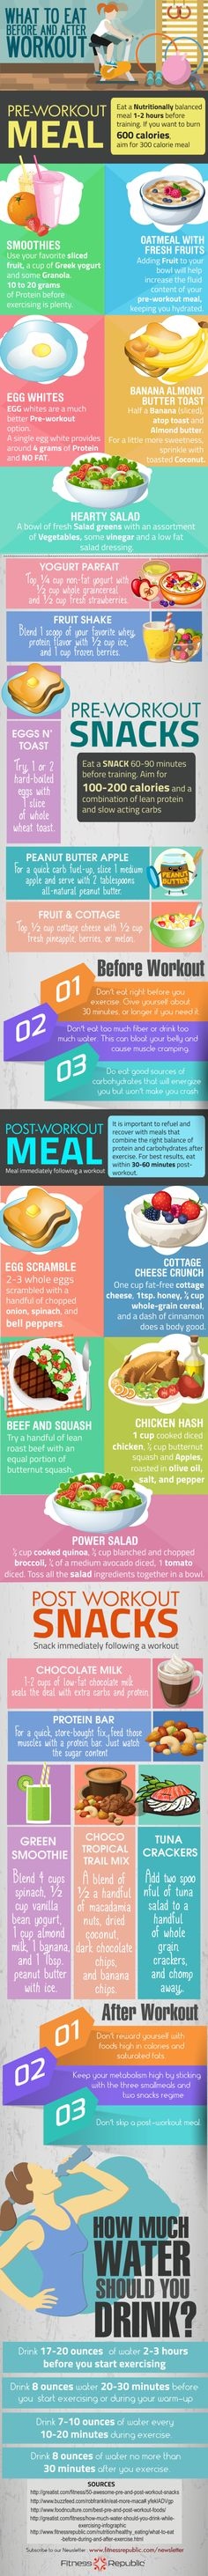 What to Eat Before and After Workout Infographic